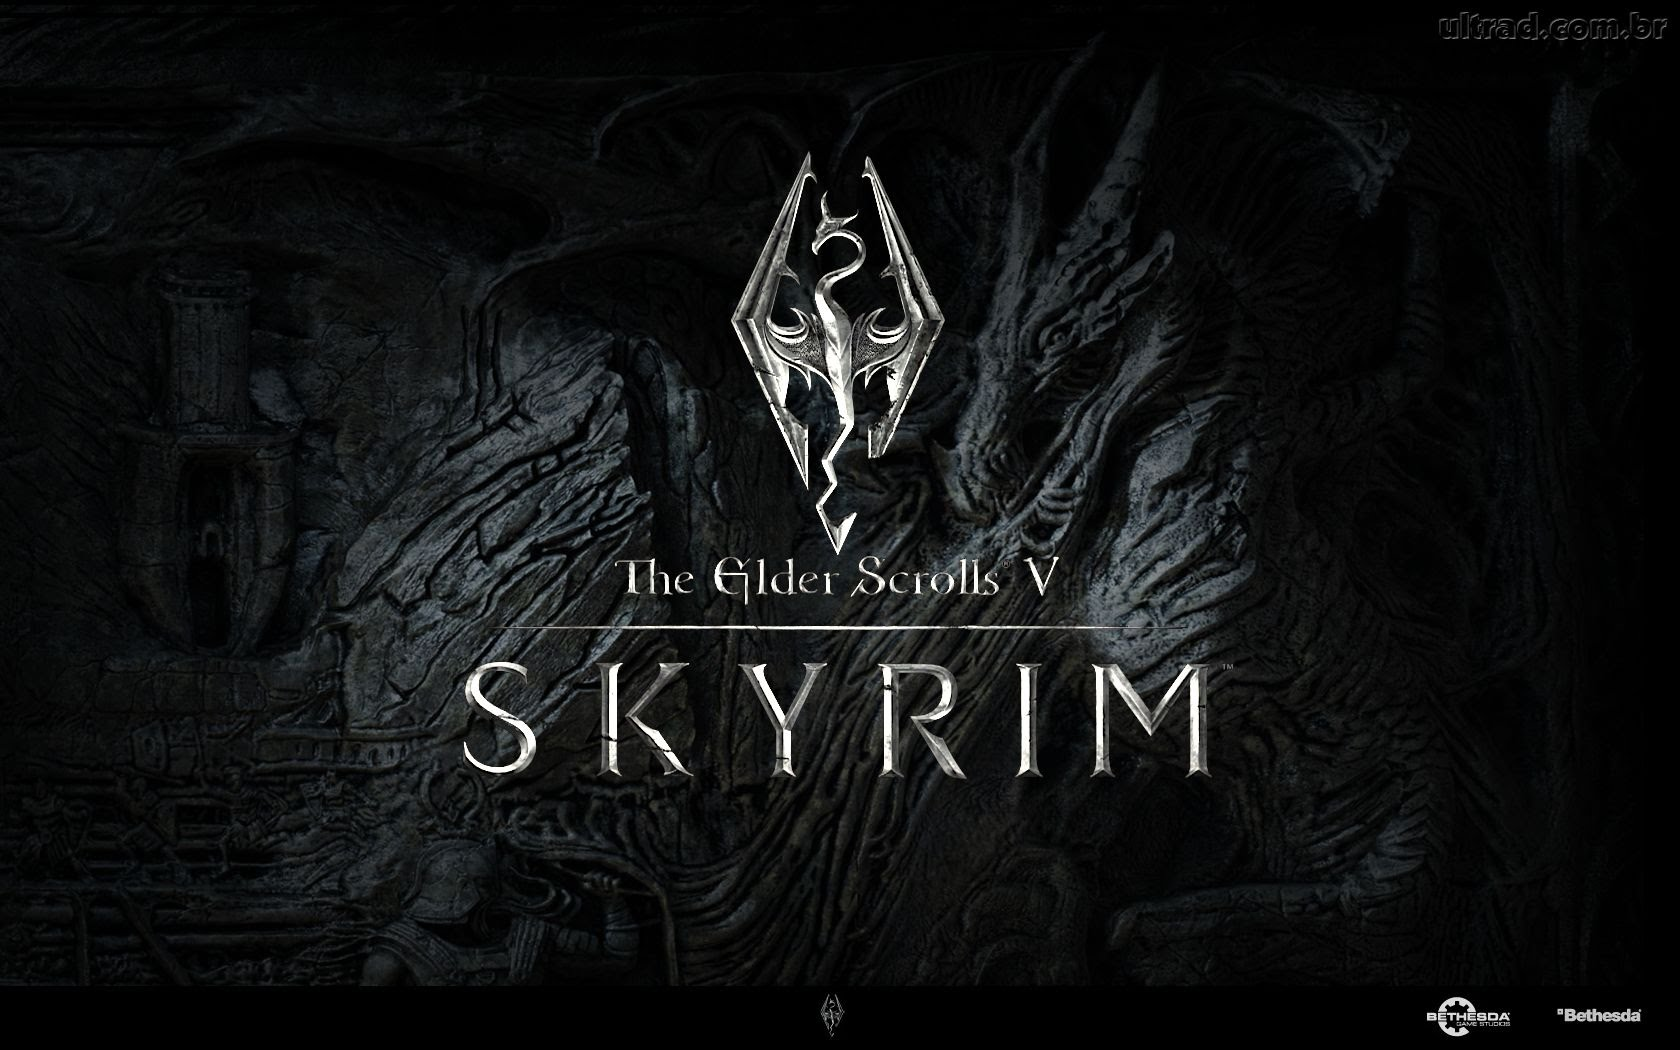 The Elder Scrolls V: Skyrim Wholesale Price Steam Key